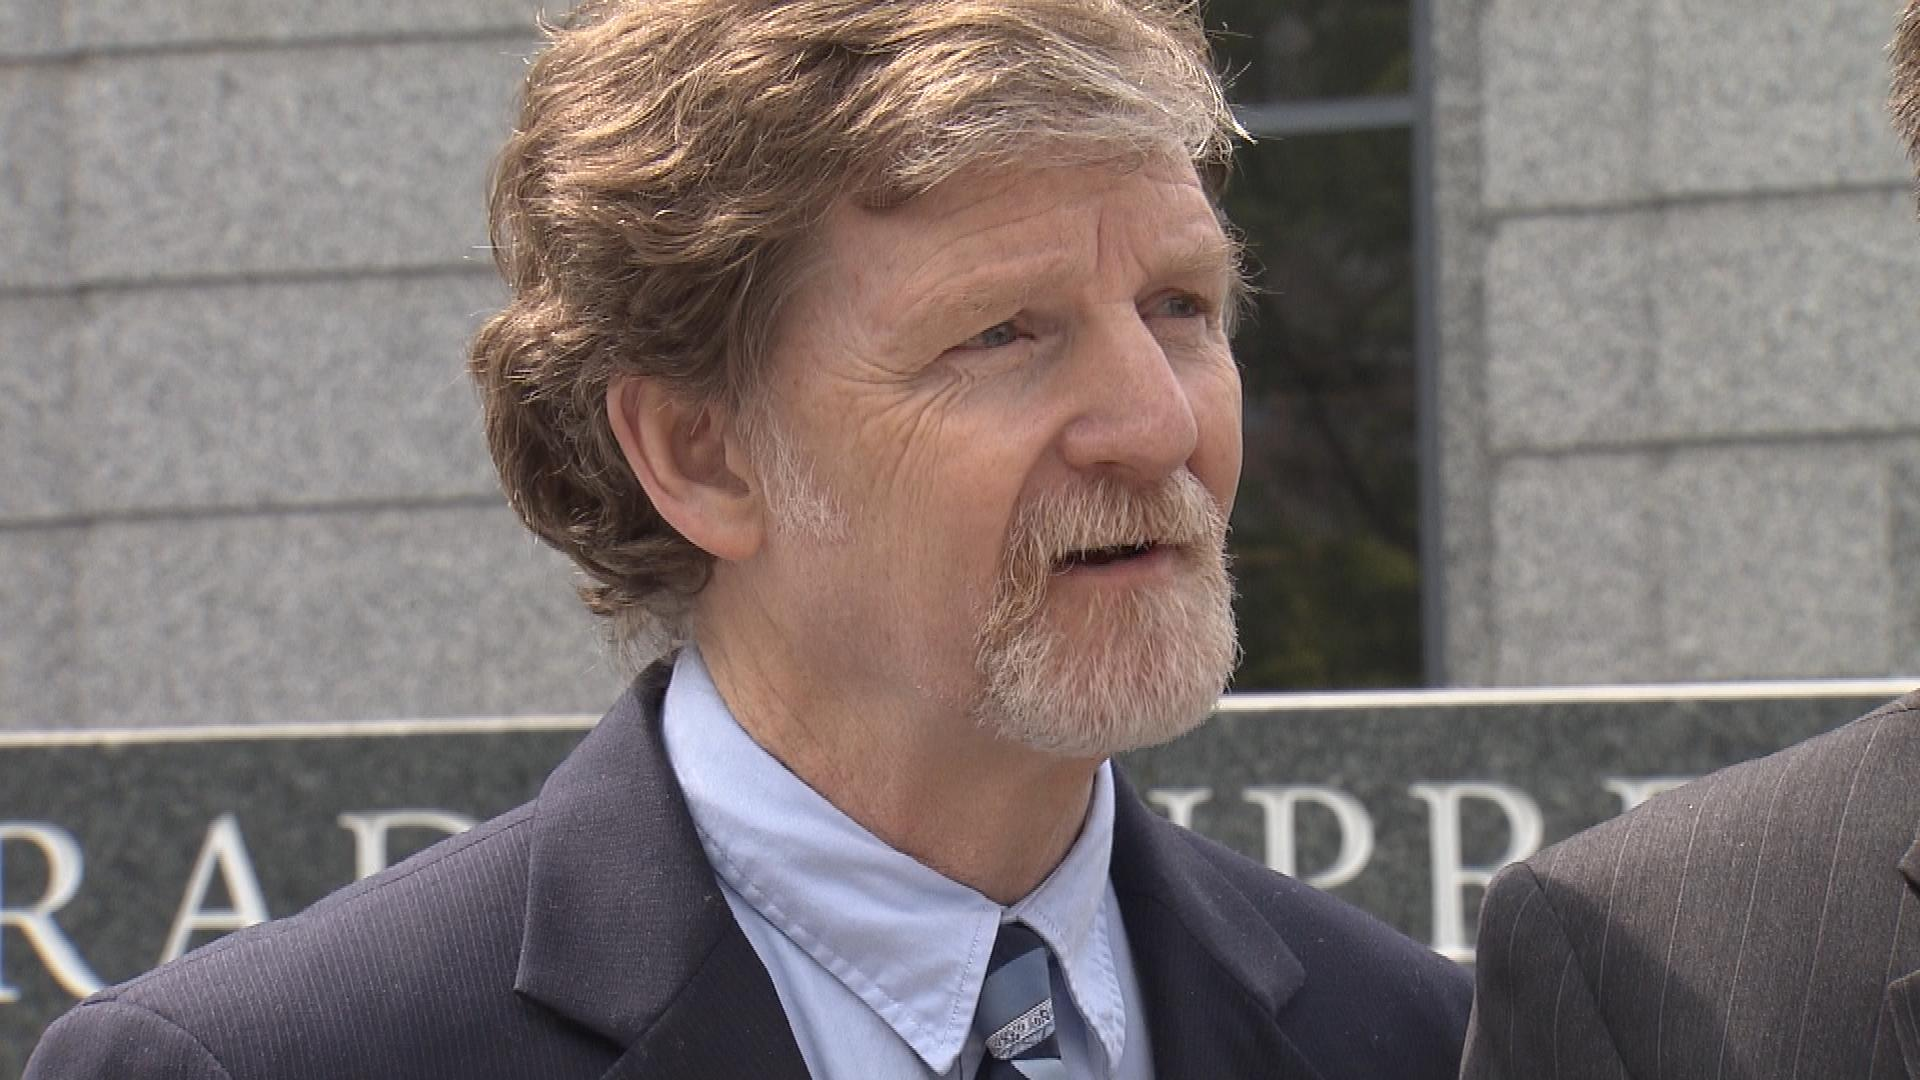 Jack Phillips (credit: CBS)